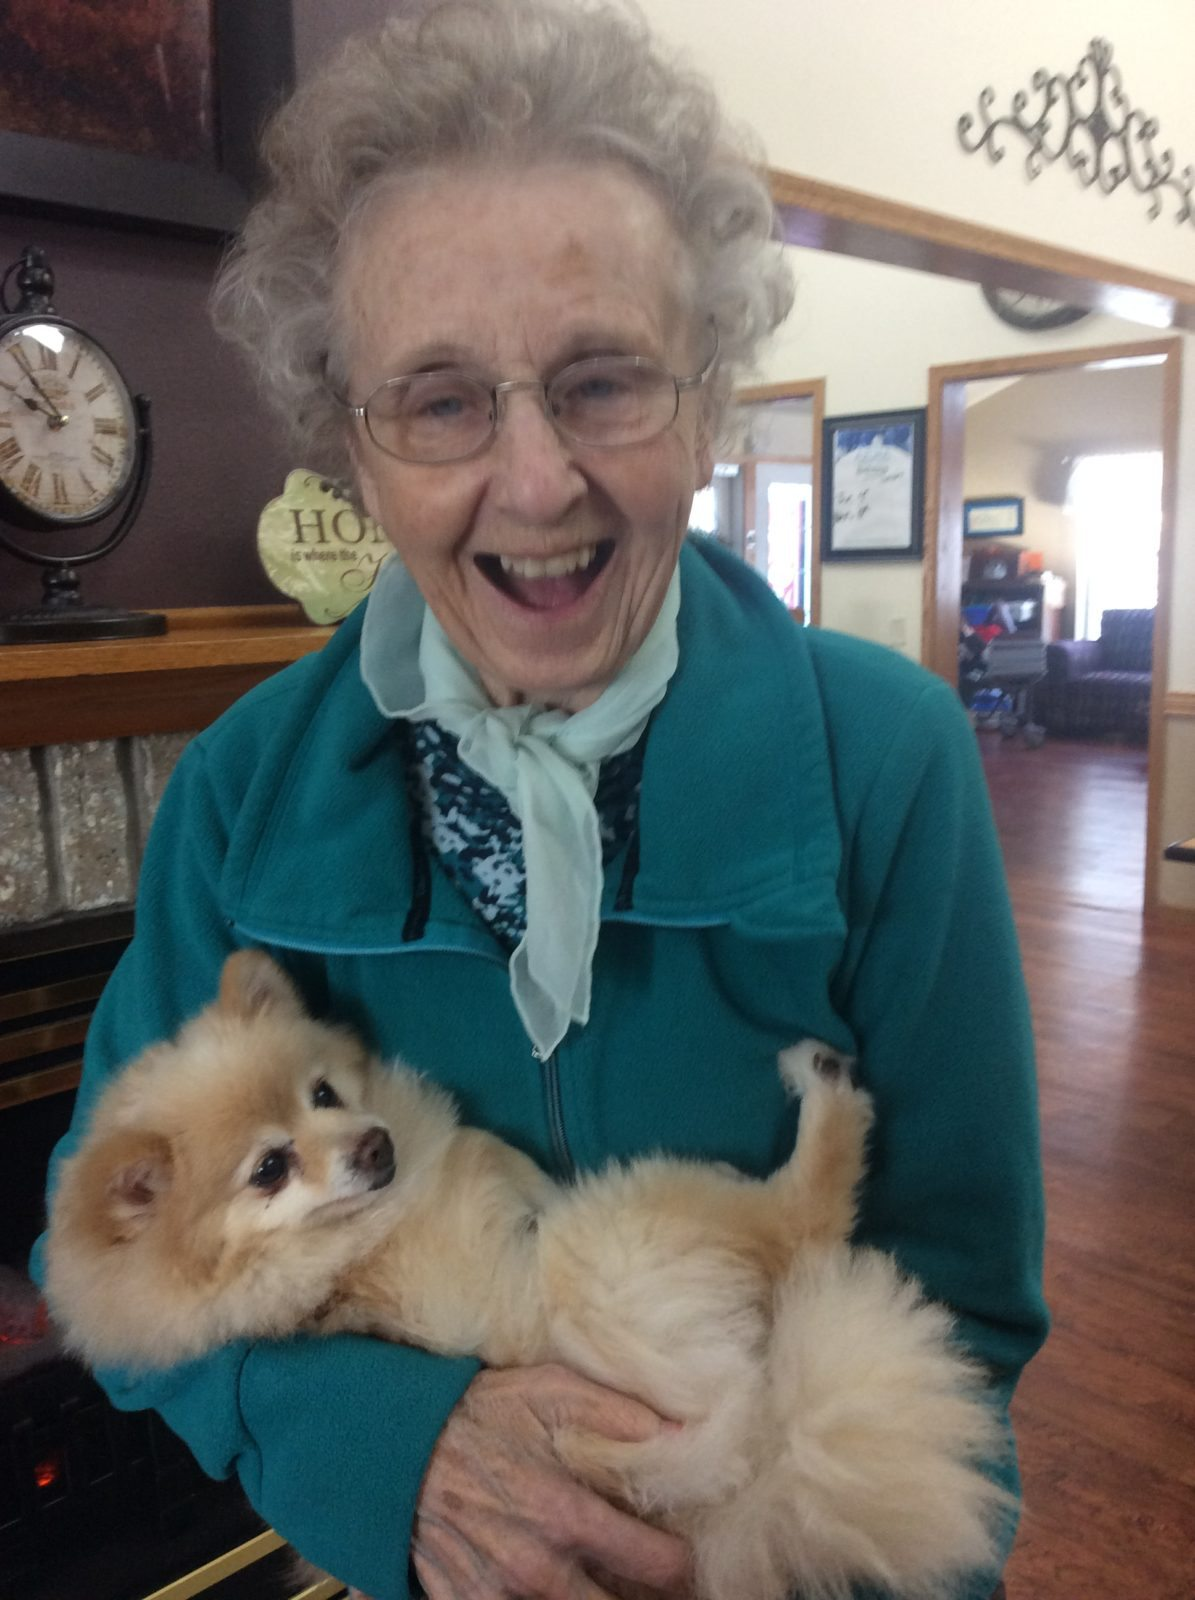 Residents at Azura of Eau Claire enjoy pet therapy and reminisce on past memories with their pets.